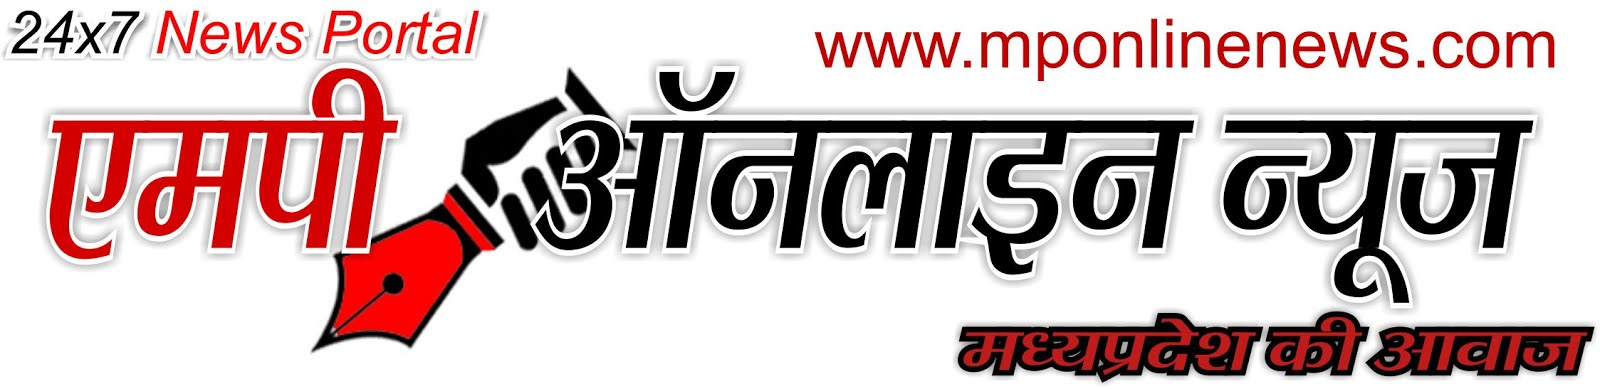 MP Online News Live : Best Hindi News Website